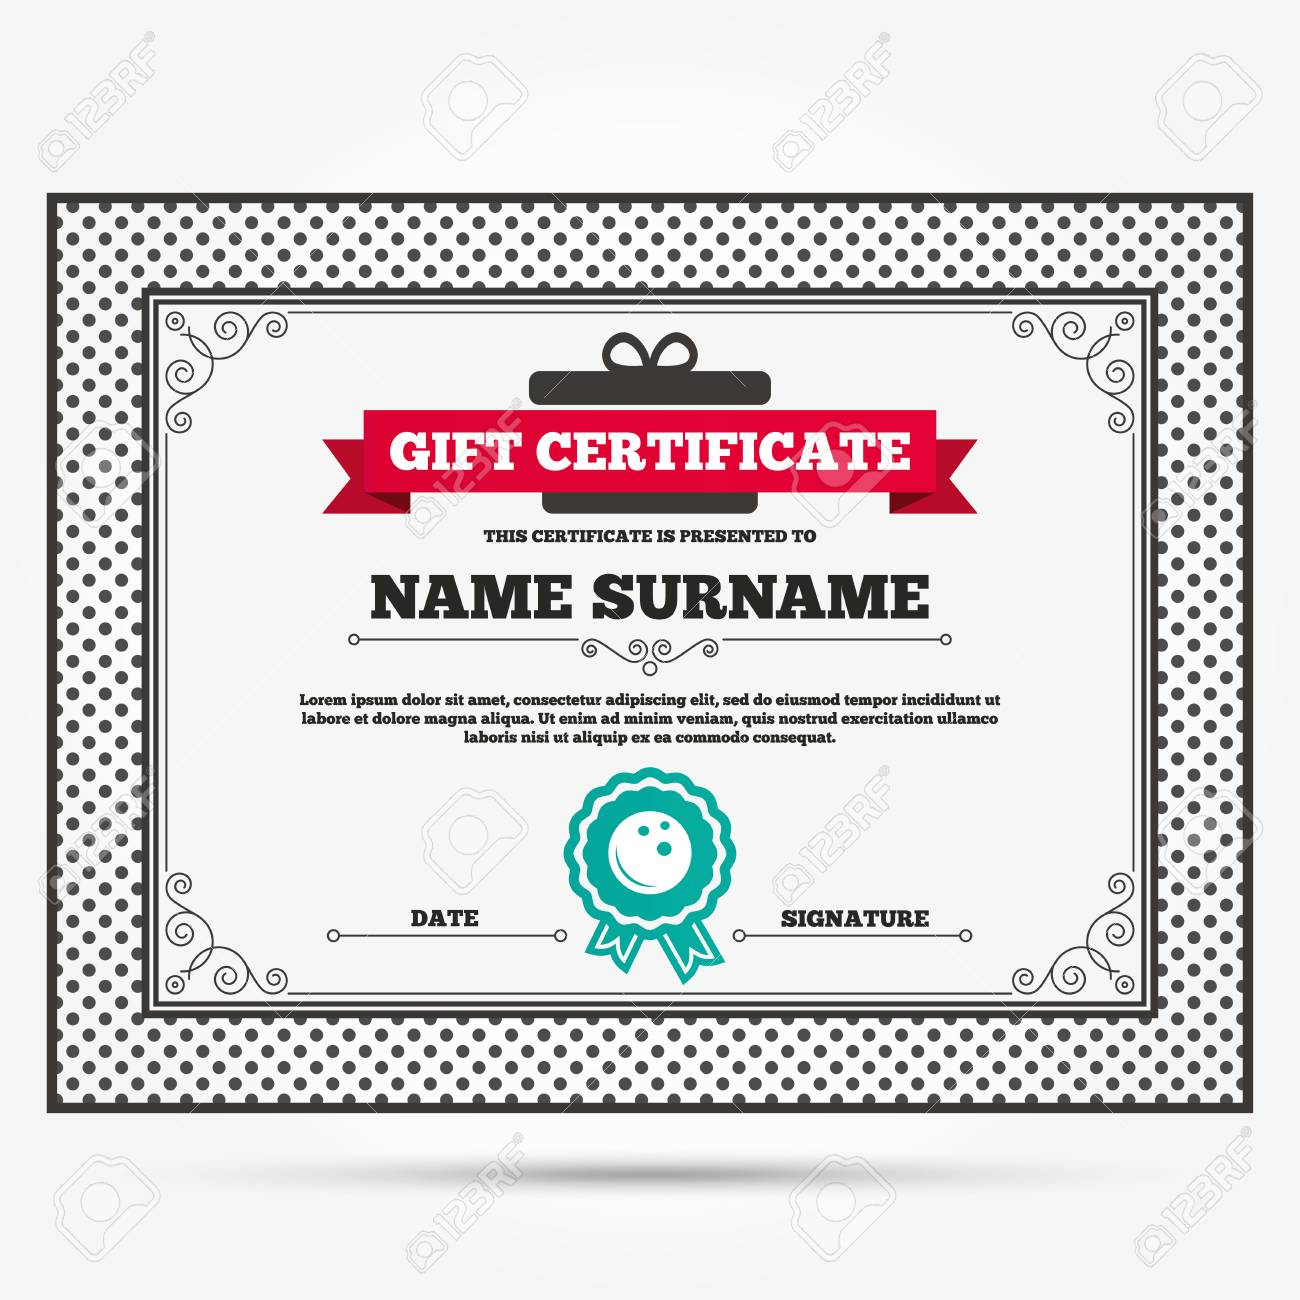 Gift certificate template free tennis report template microsoft word gift certificate bowling ball sign icon bowl symbol template 41883648 gift certificate bowling ball sign icon bowl symbol template with vintage patterns xflitez Image collections